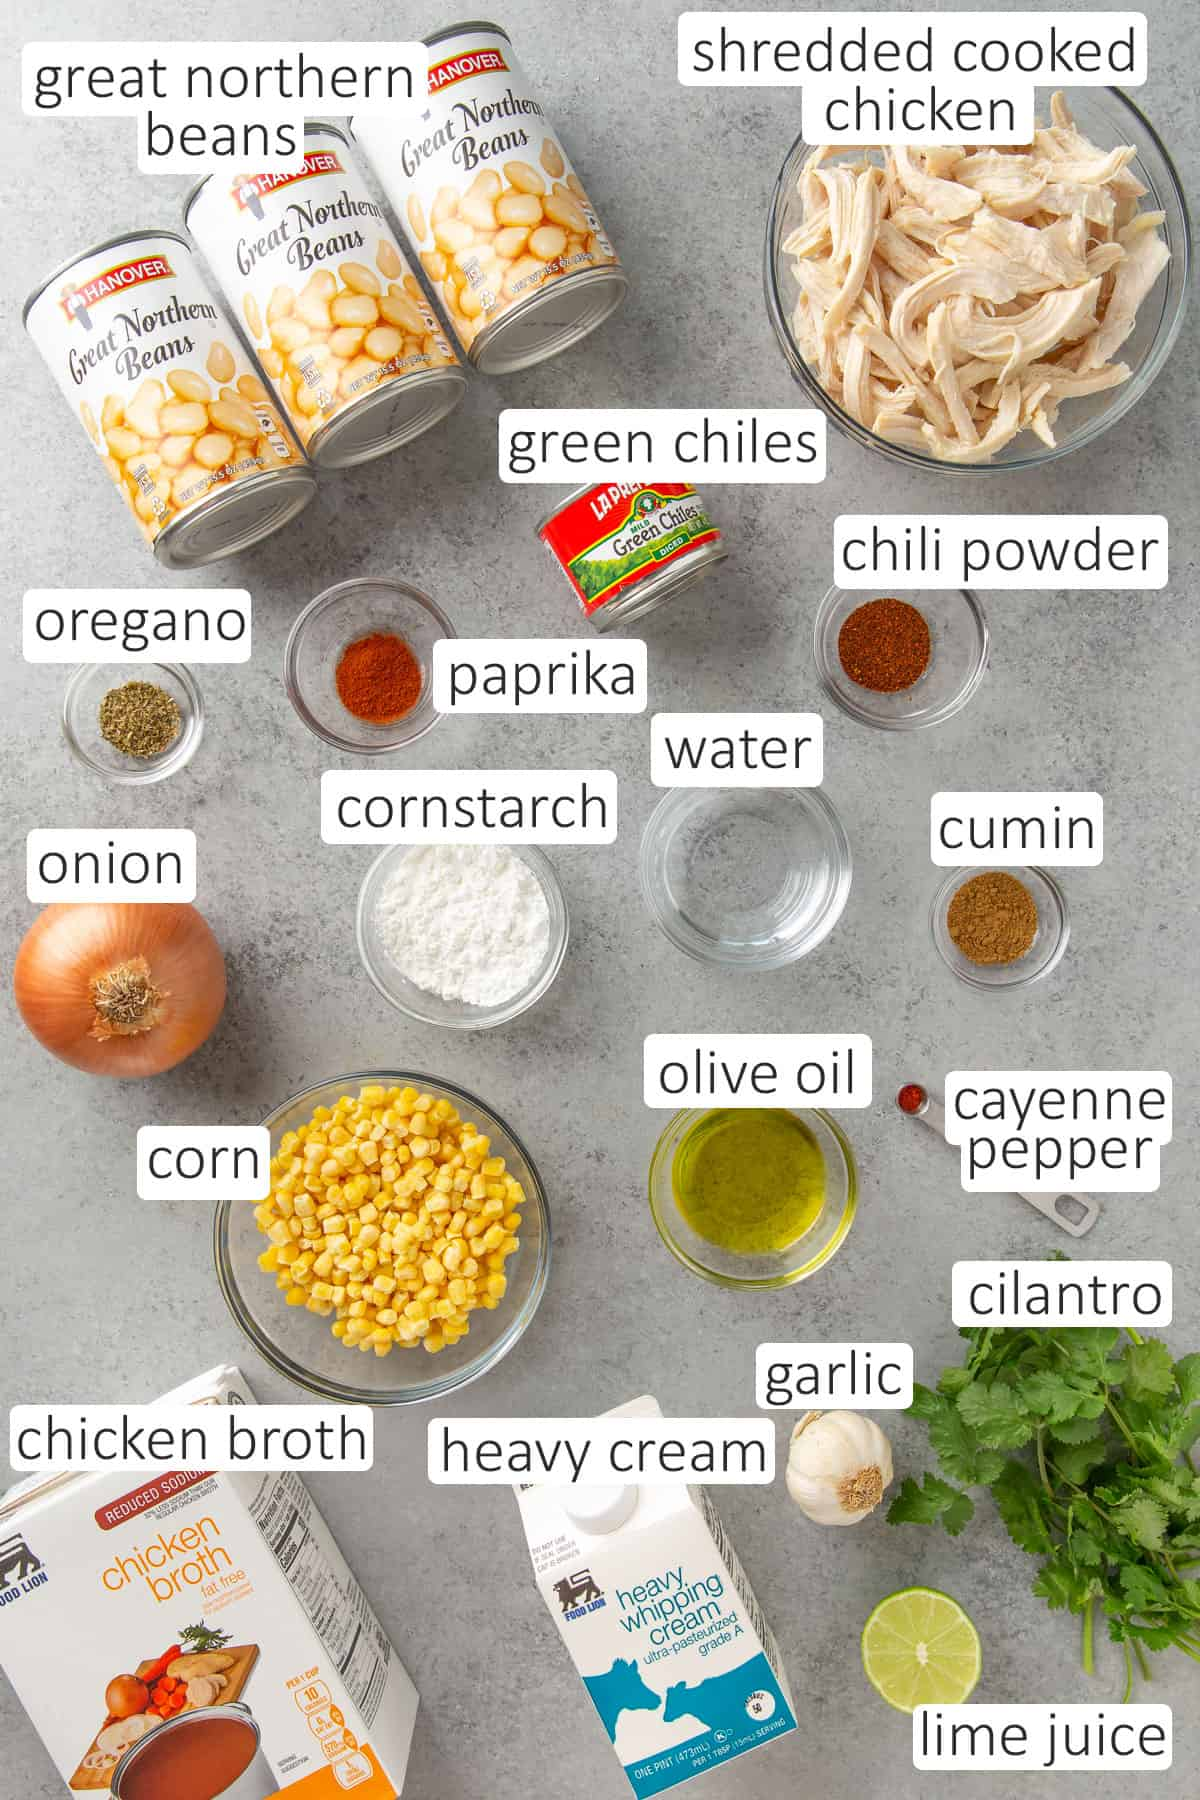 Overhead view of ingredients for white chicken chili on a gray surface.